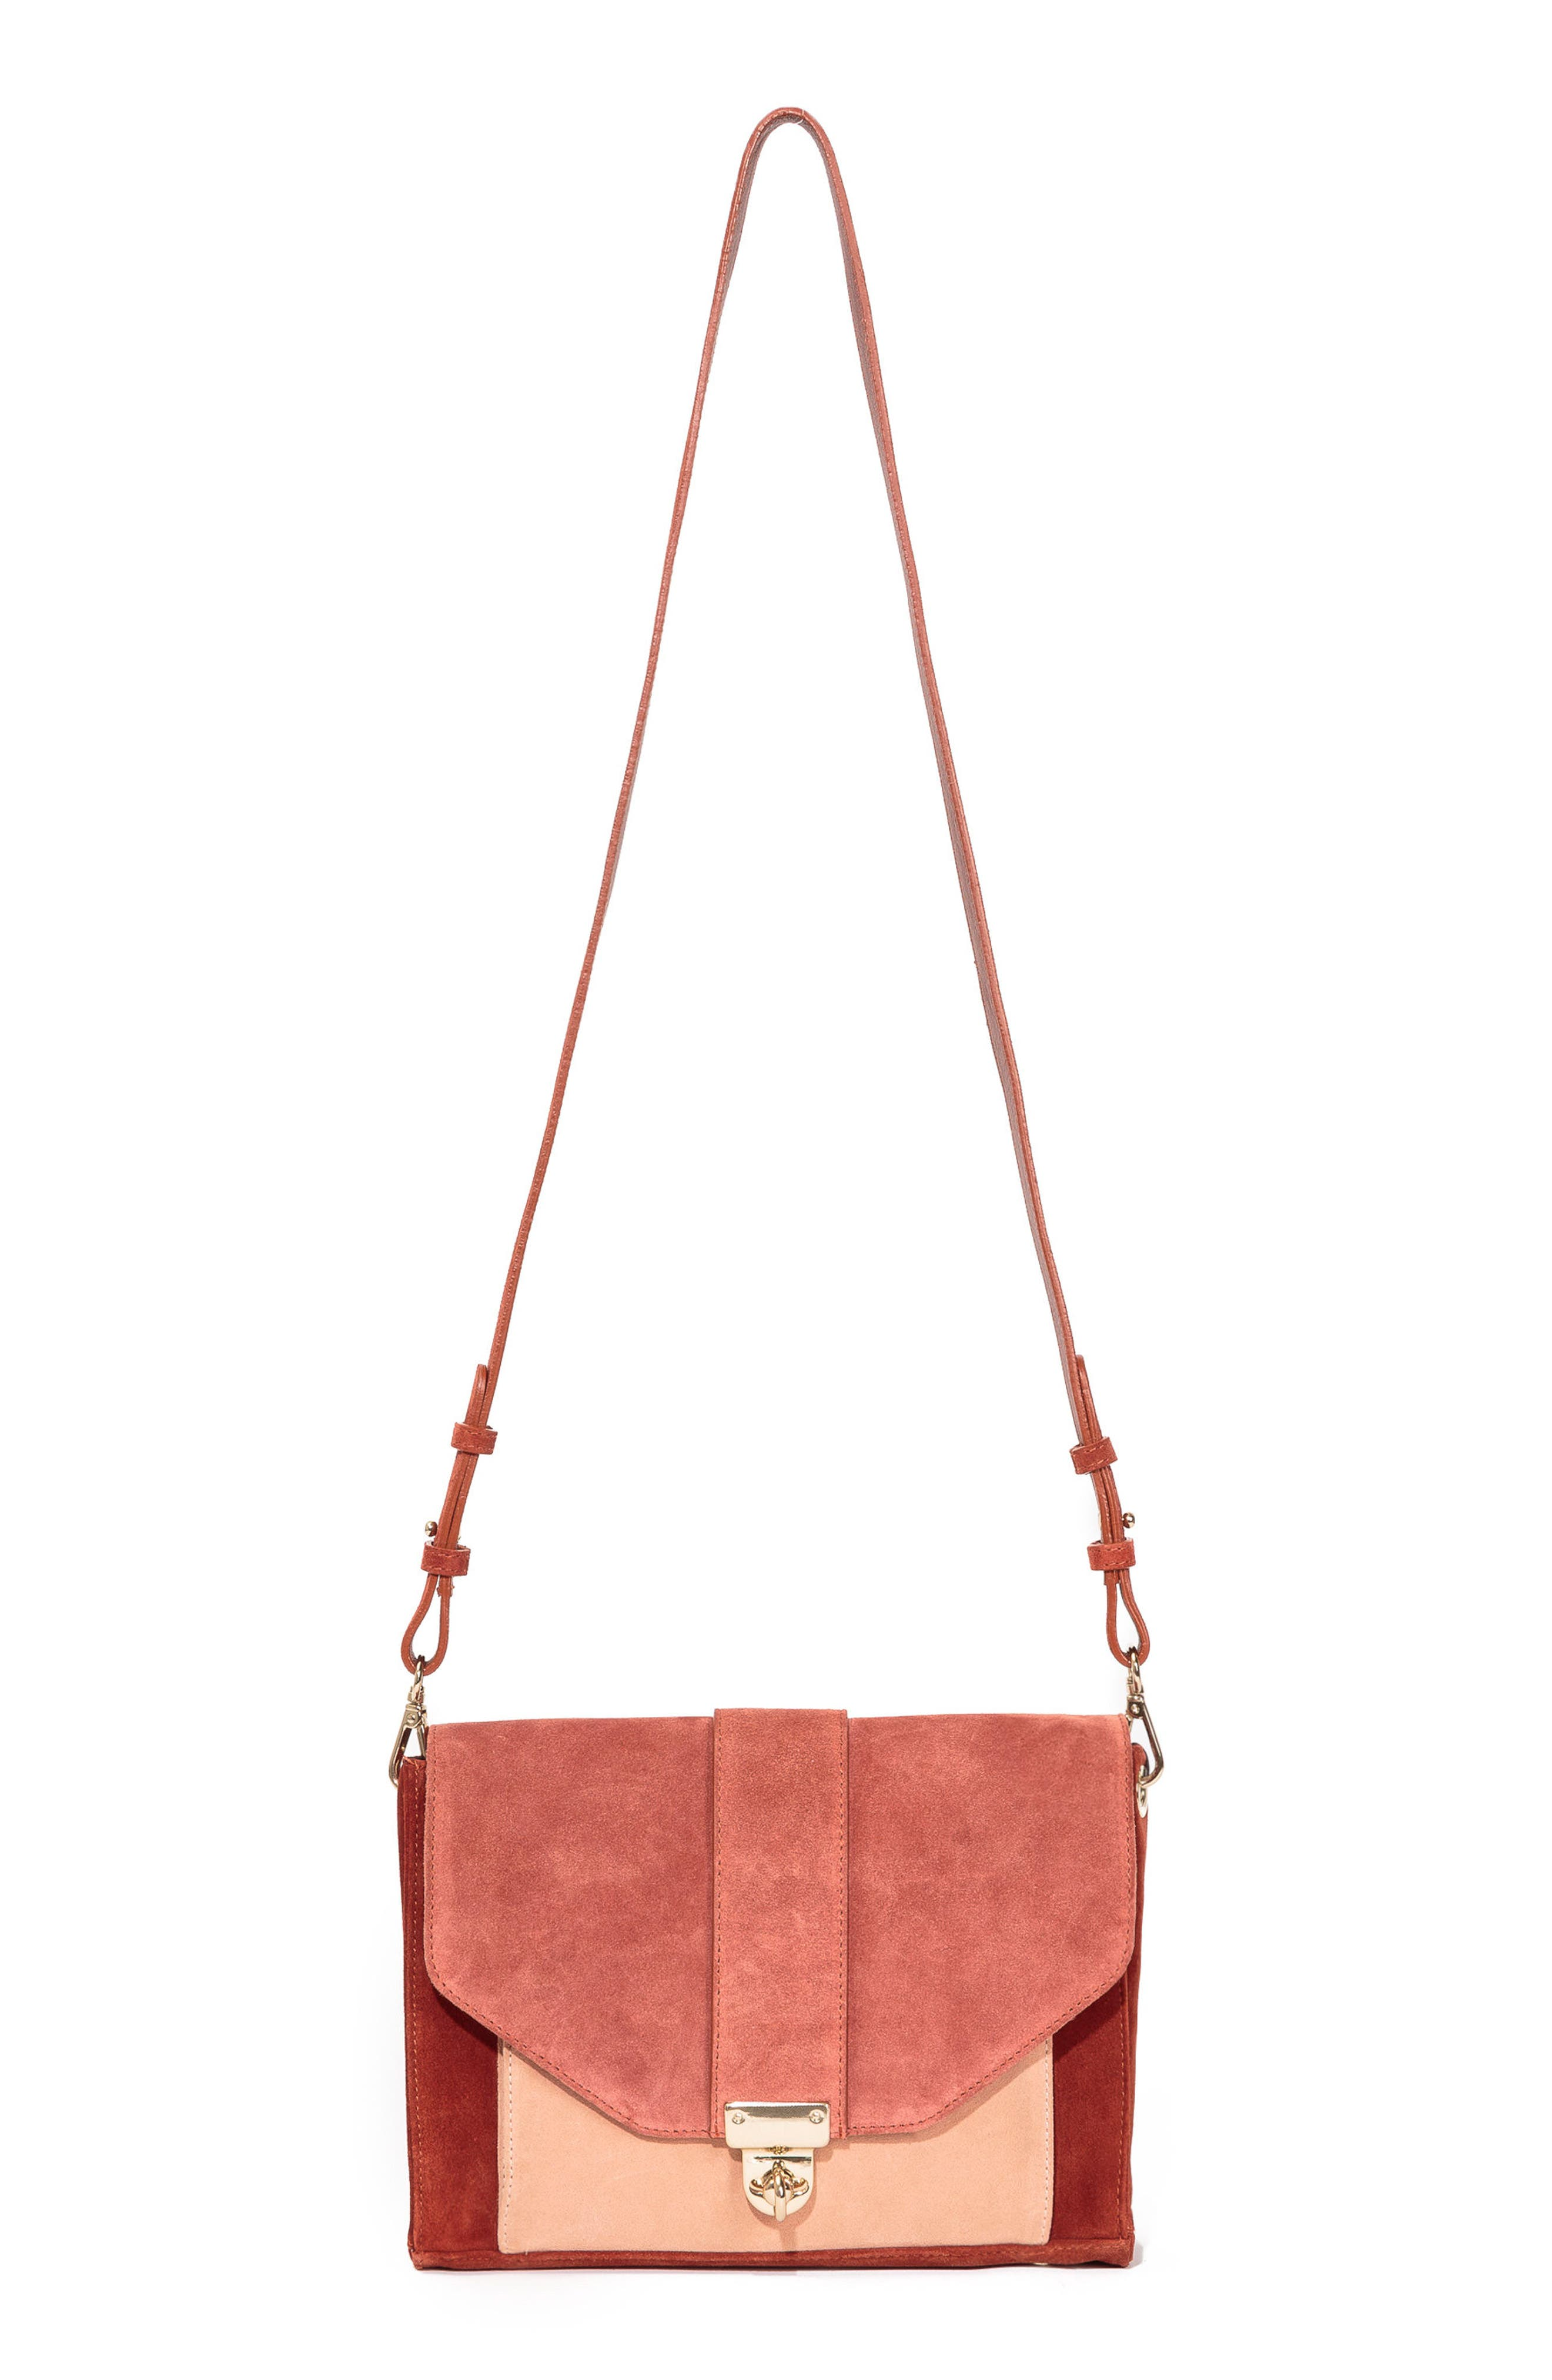 Tiger Crossbody Bag,                             Main thumbnail 1, color,                             Terracotta